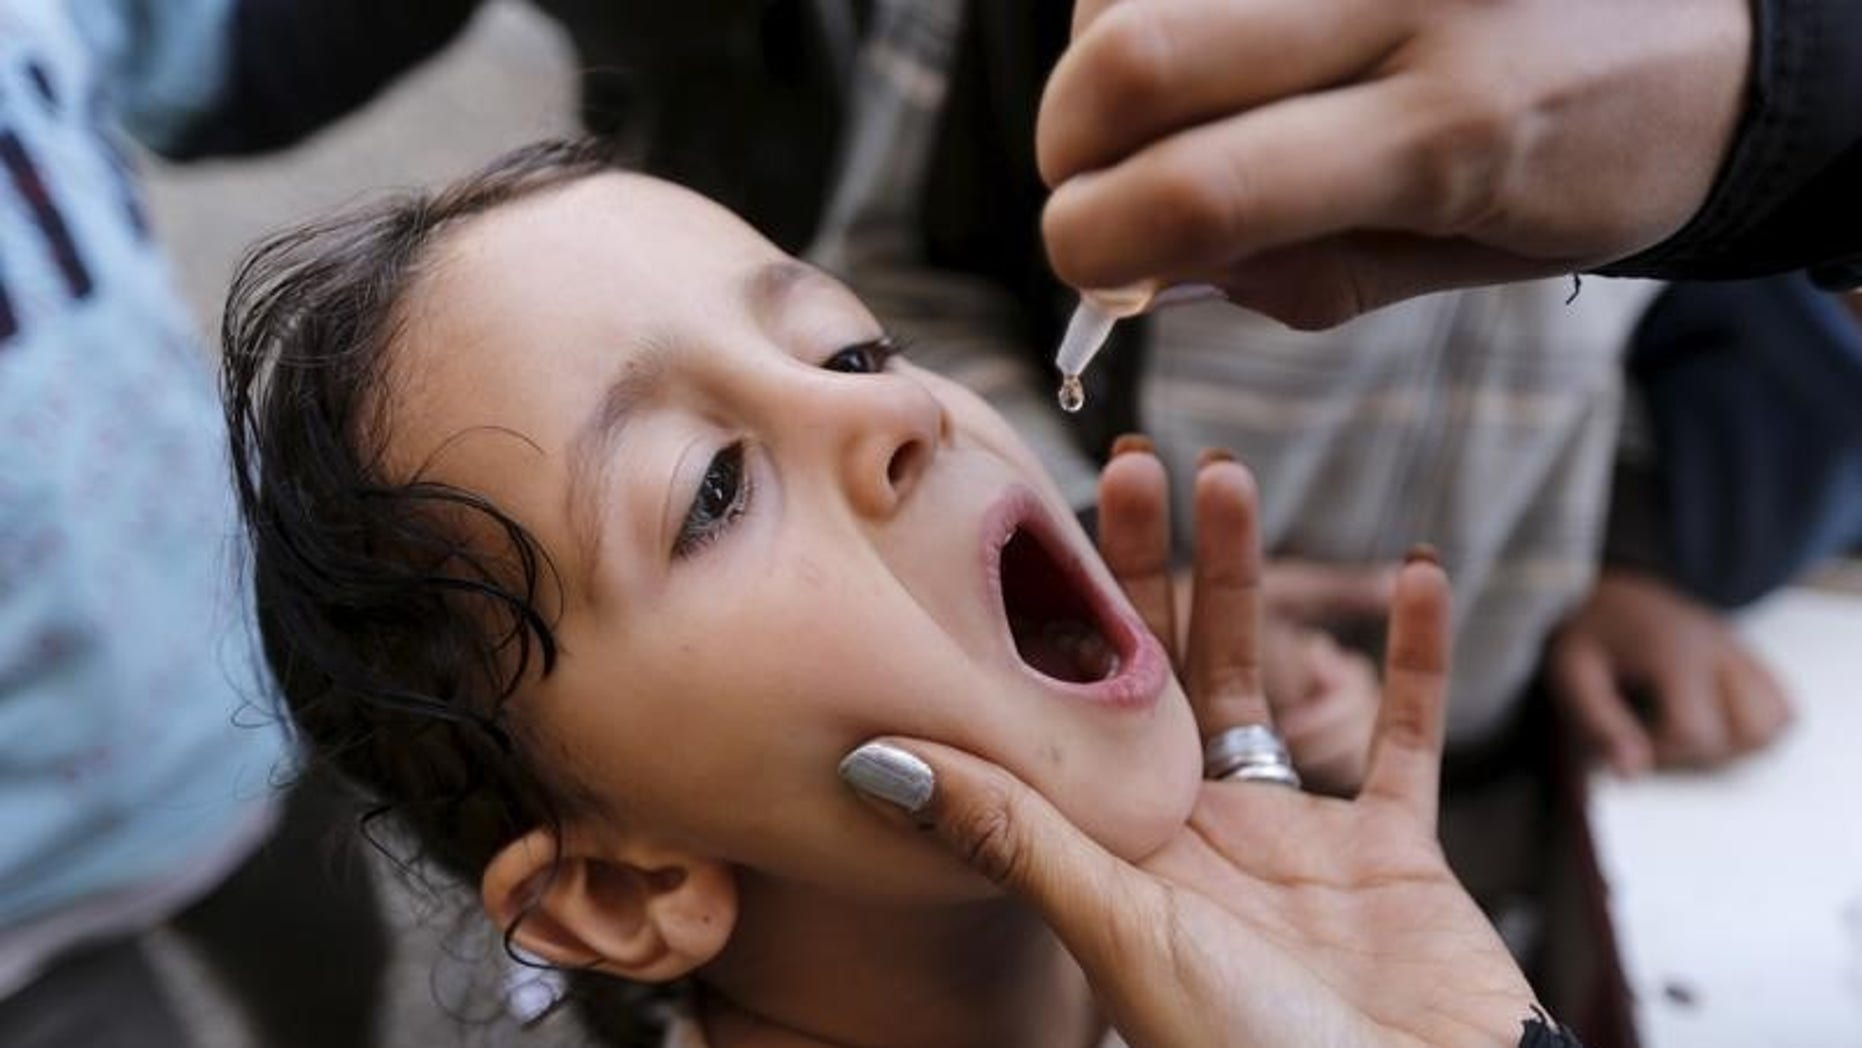 A girl receives polio vaccine drops at a school in Sanaa sheltering people after conflict forced them to flee their homes in Yemen's Houthi-controlled northern province of Saada August 15, 2015. REUTERS/Khaled Abdullah